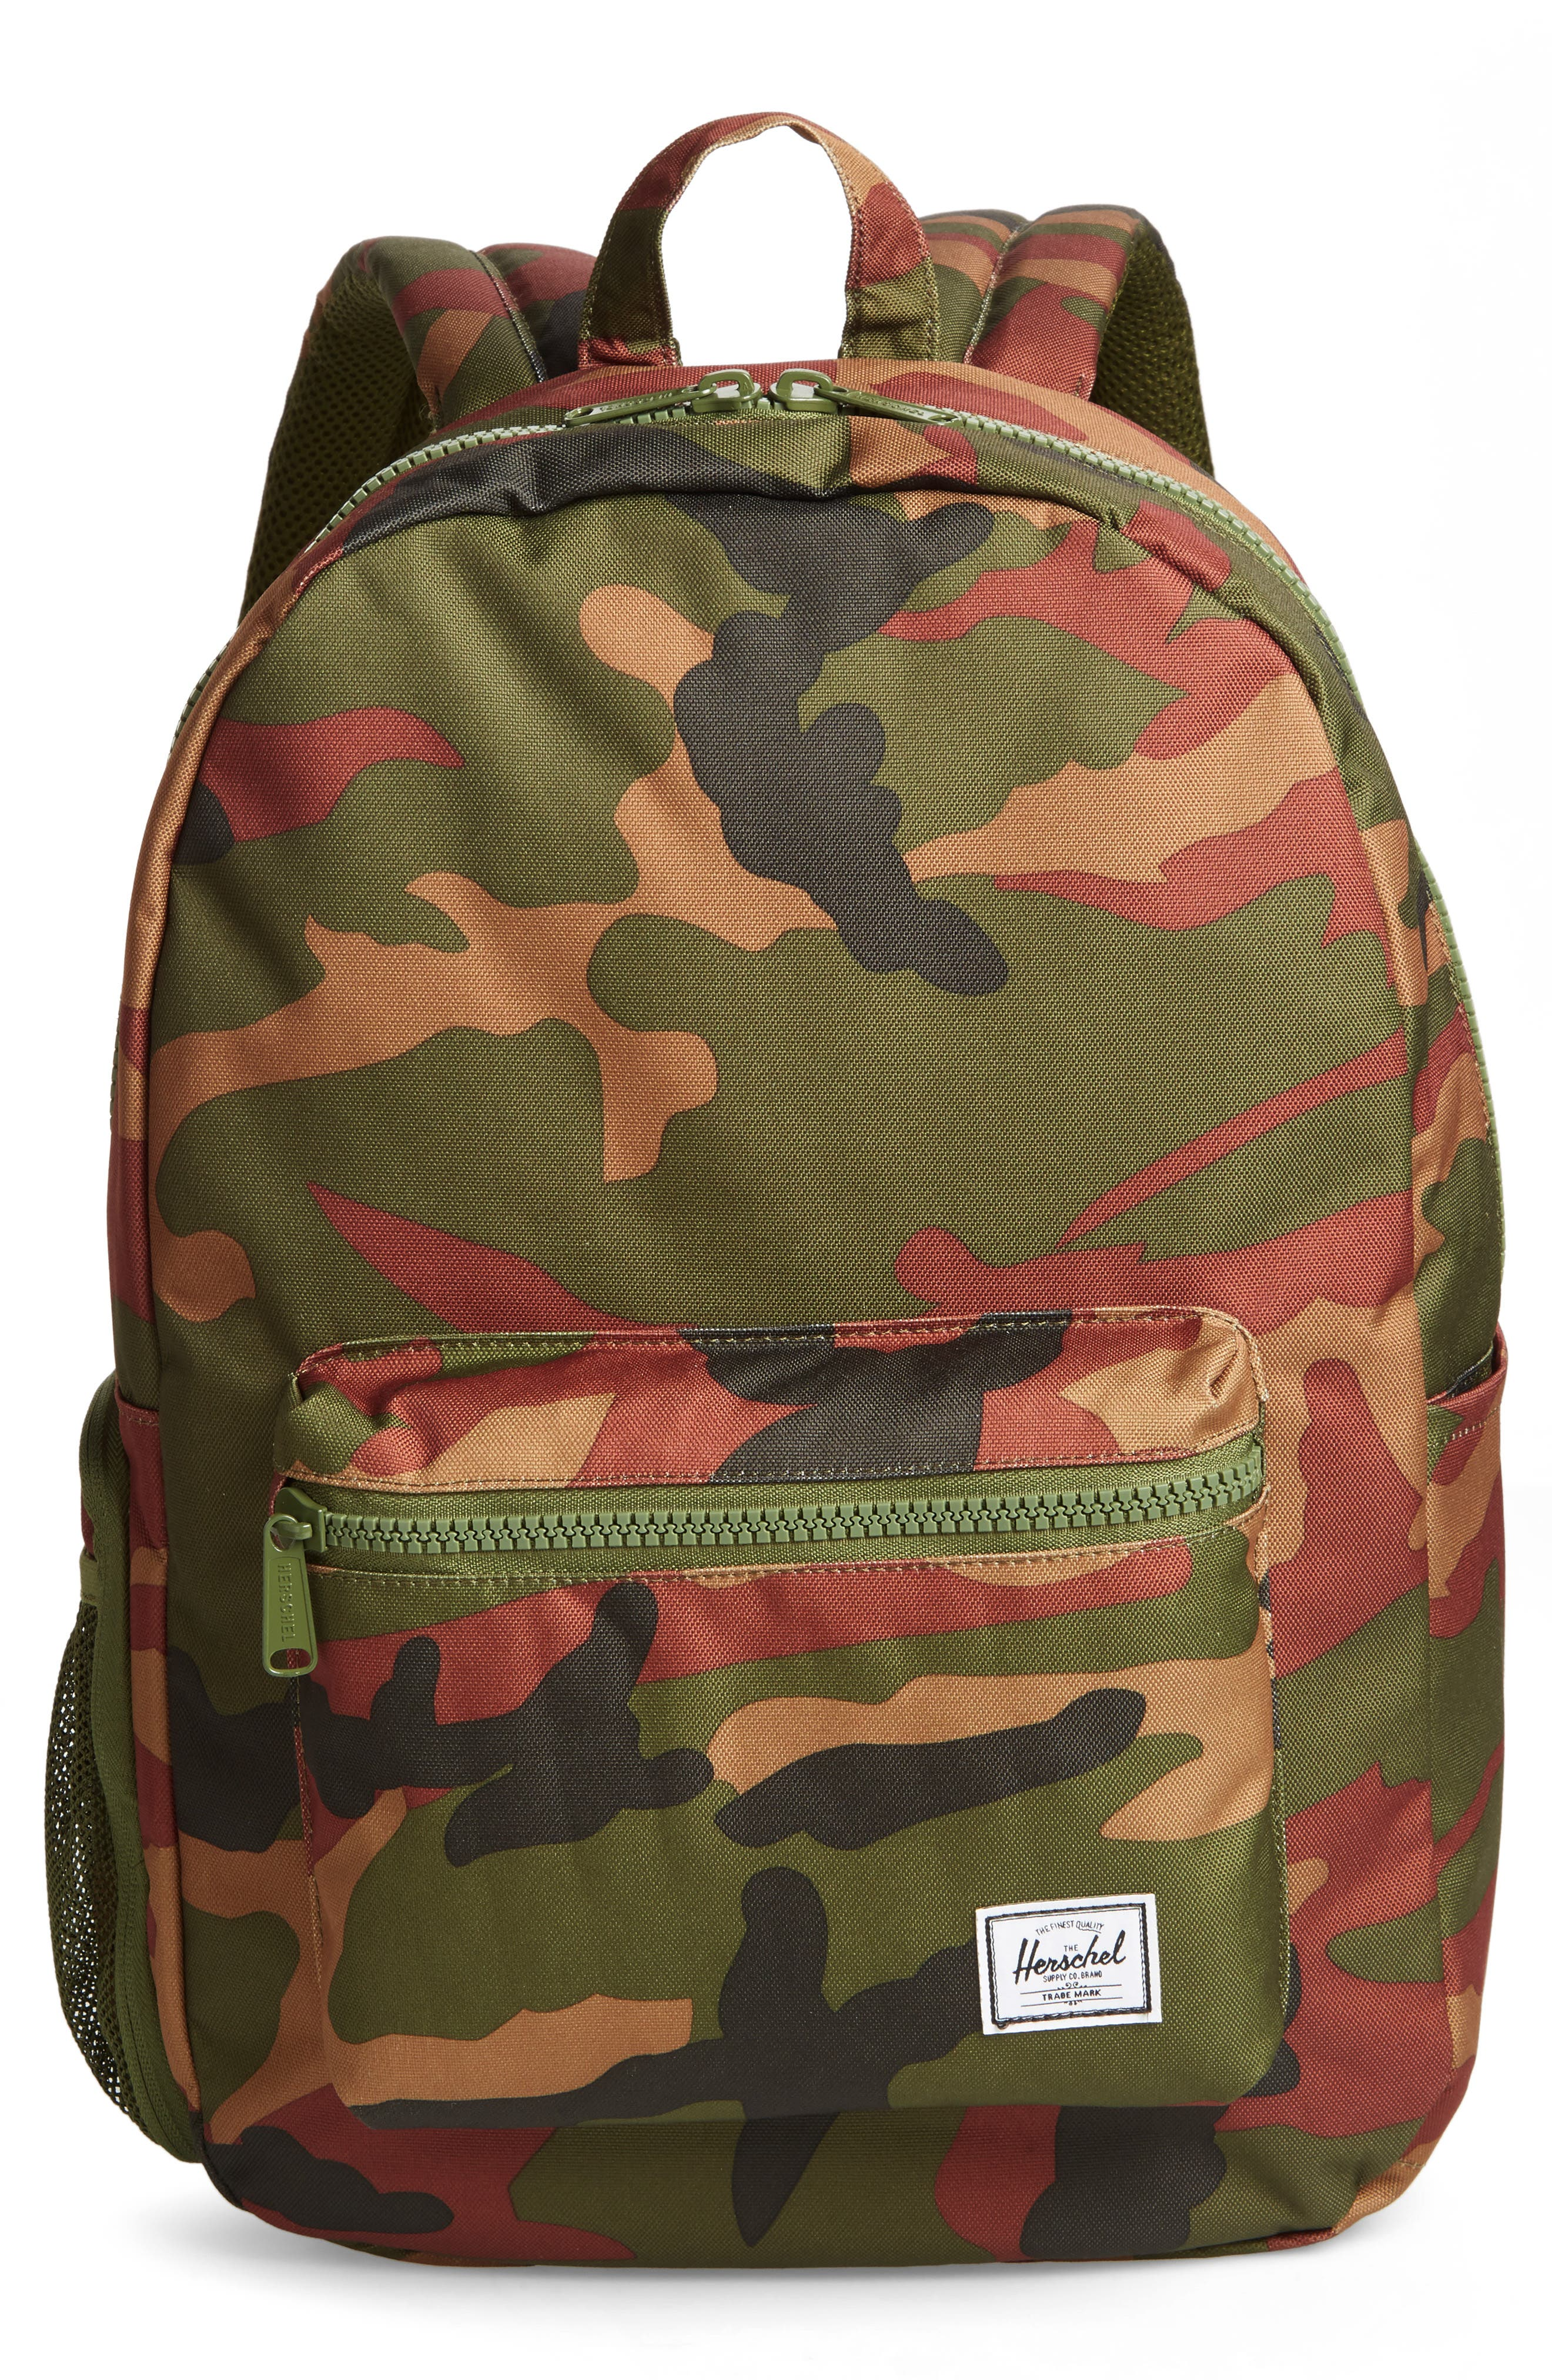 HERSCHEL SUPPLY CO.,                             Settlement Sprout Diaper Backpack,                             Main thumbnail 1, color,                             340